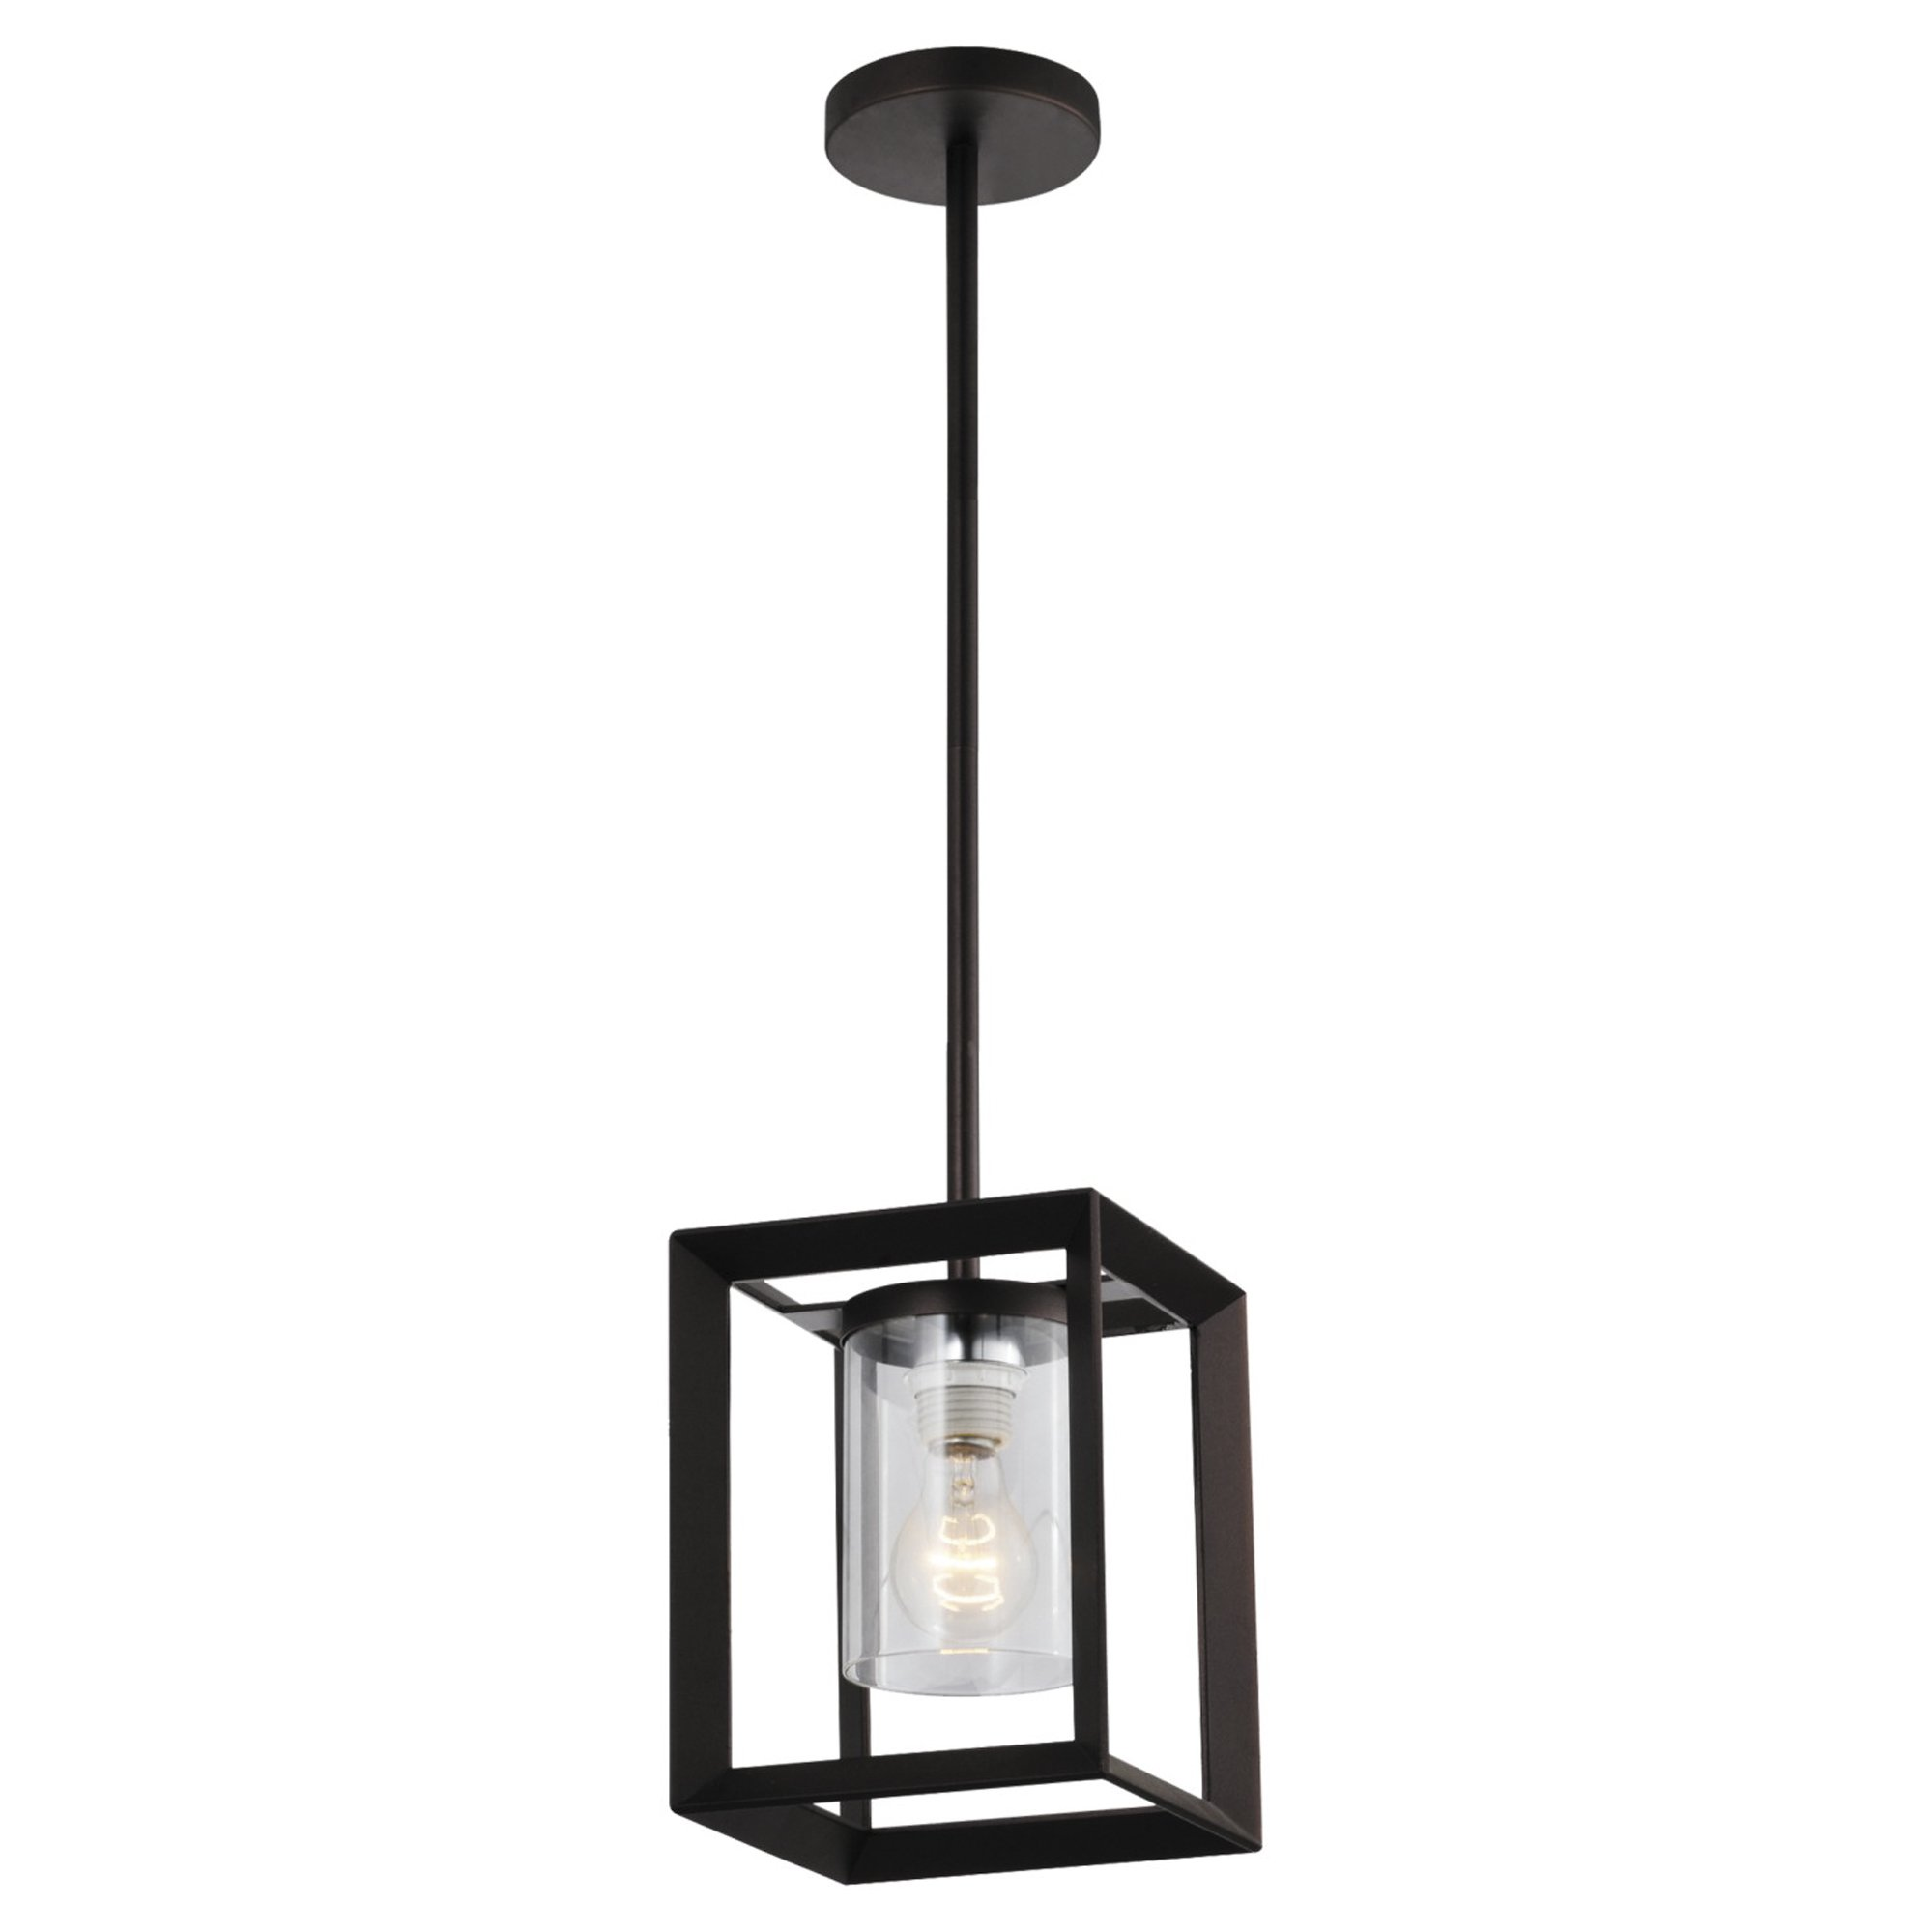 Emliviar Modern Glass Pendant Light, Single Light Metal Wire Cage Hanging Pendant Light, Oil Rubbed Bronze with Clear Glass Shade and 42'' Black Rod, 2083M1L ORB